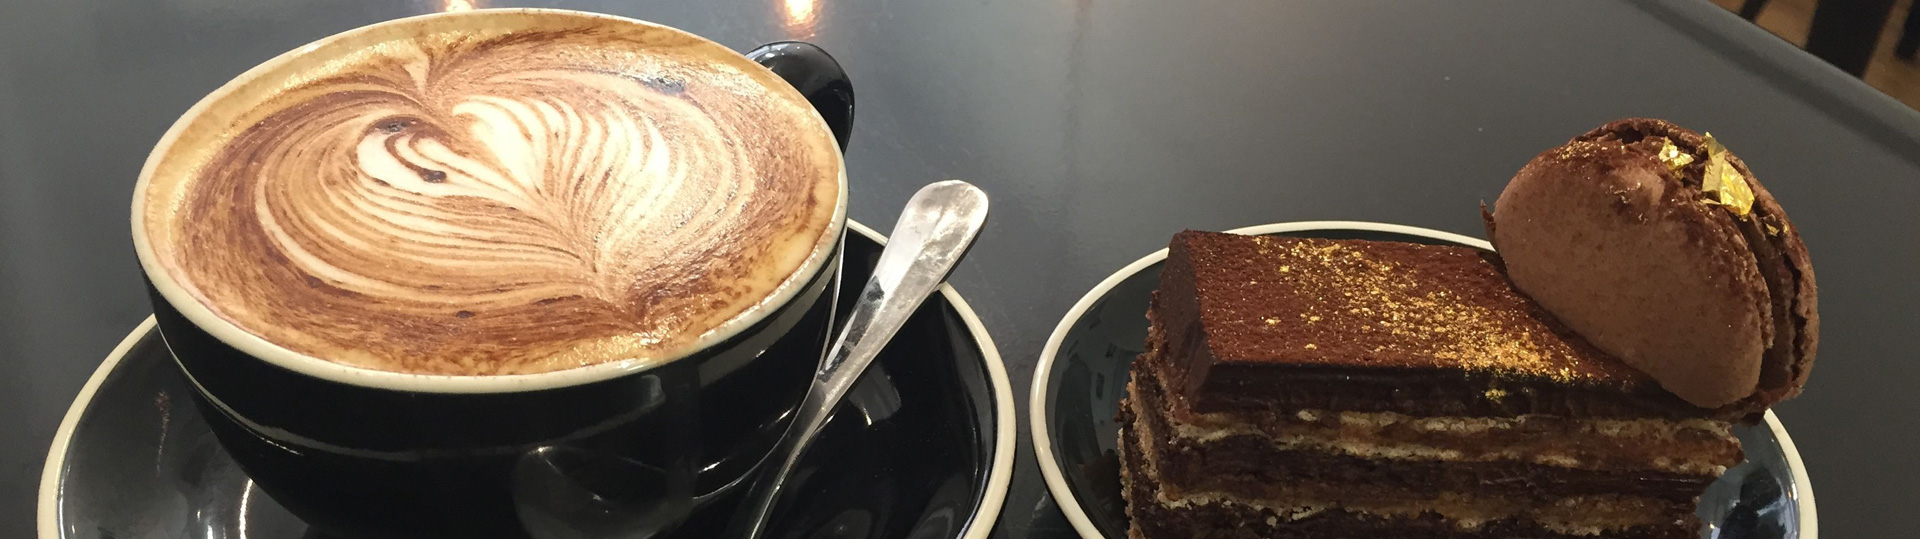 Coffees, Teas & Cakes